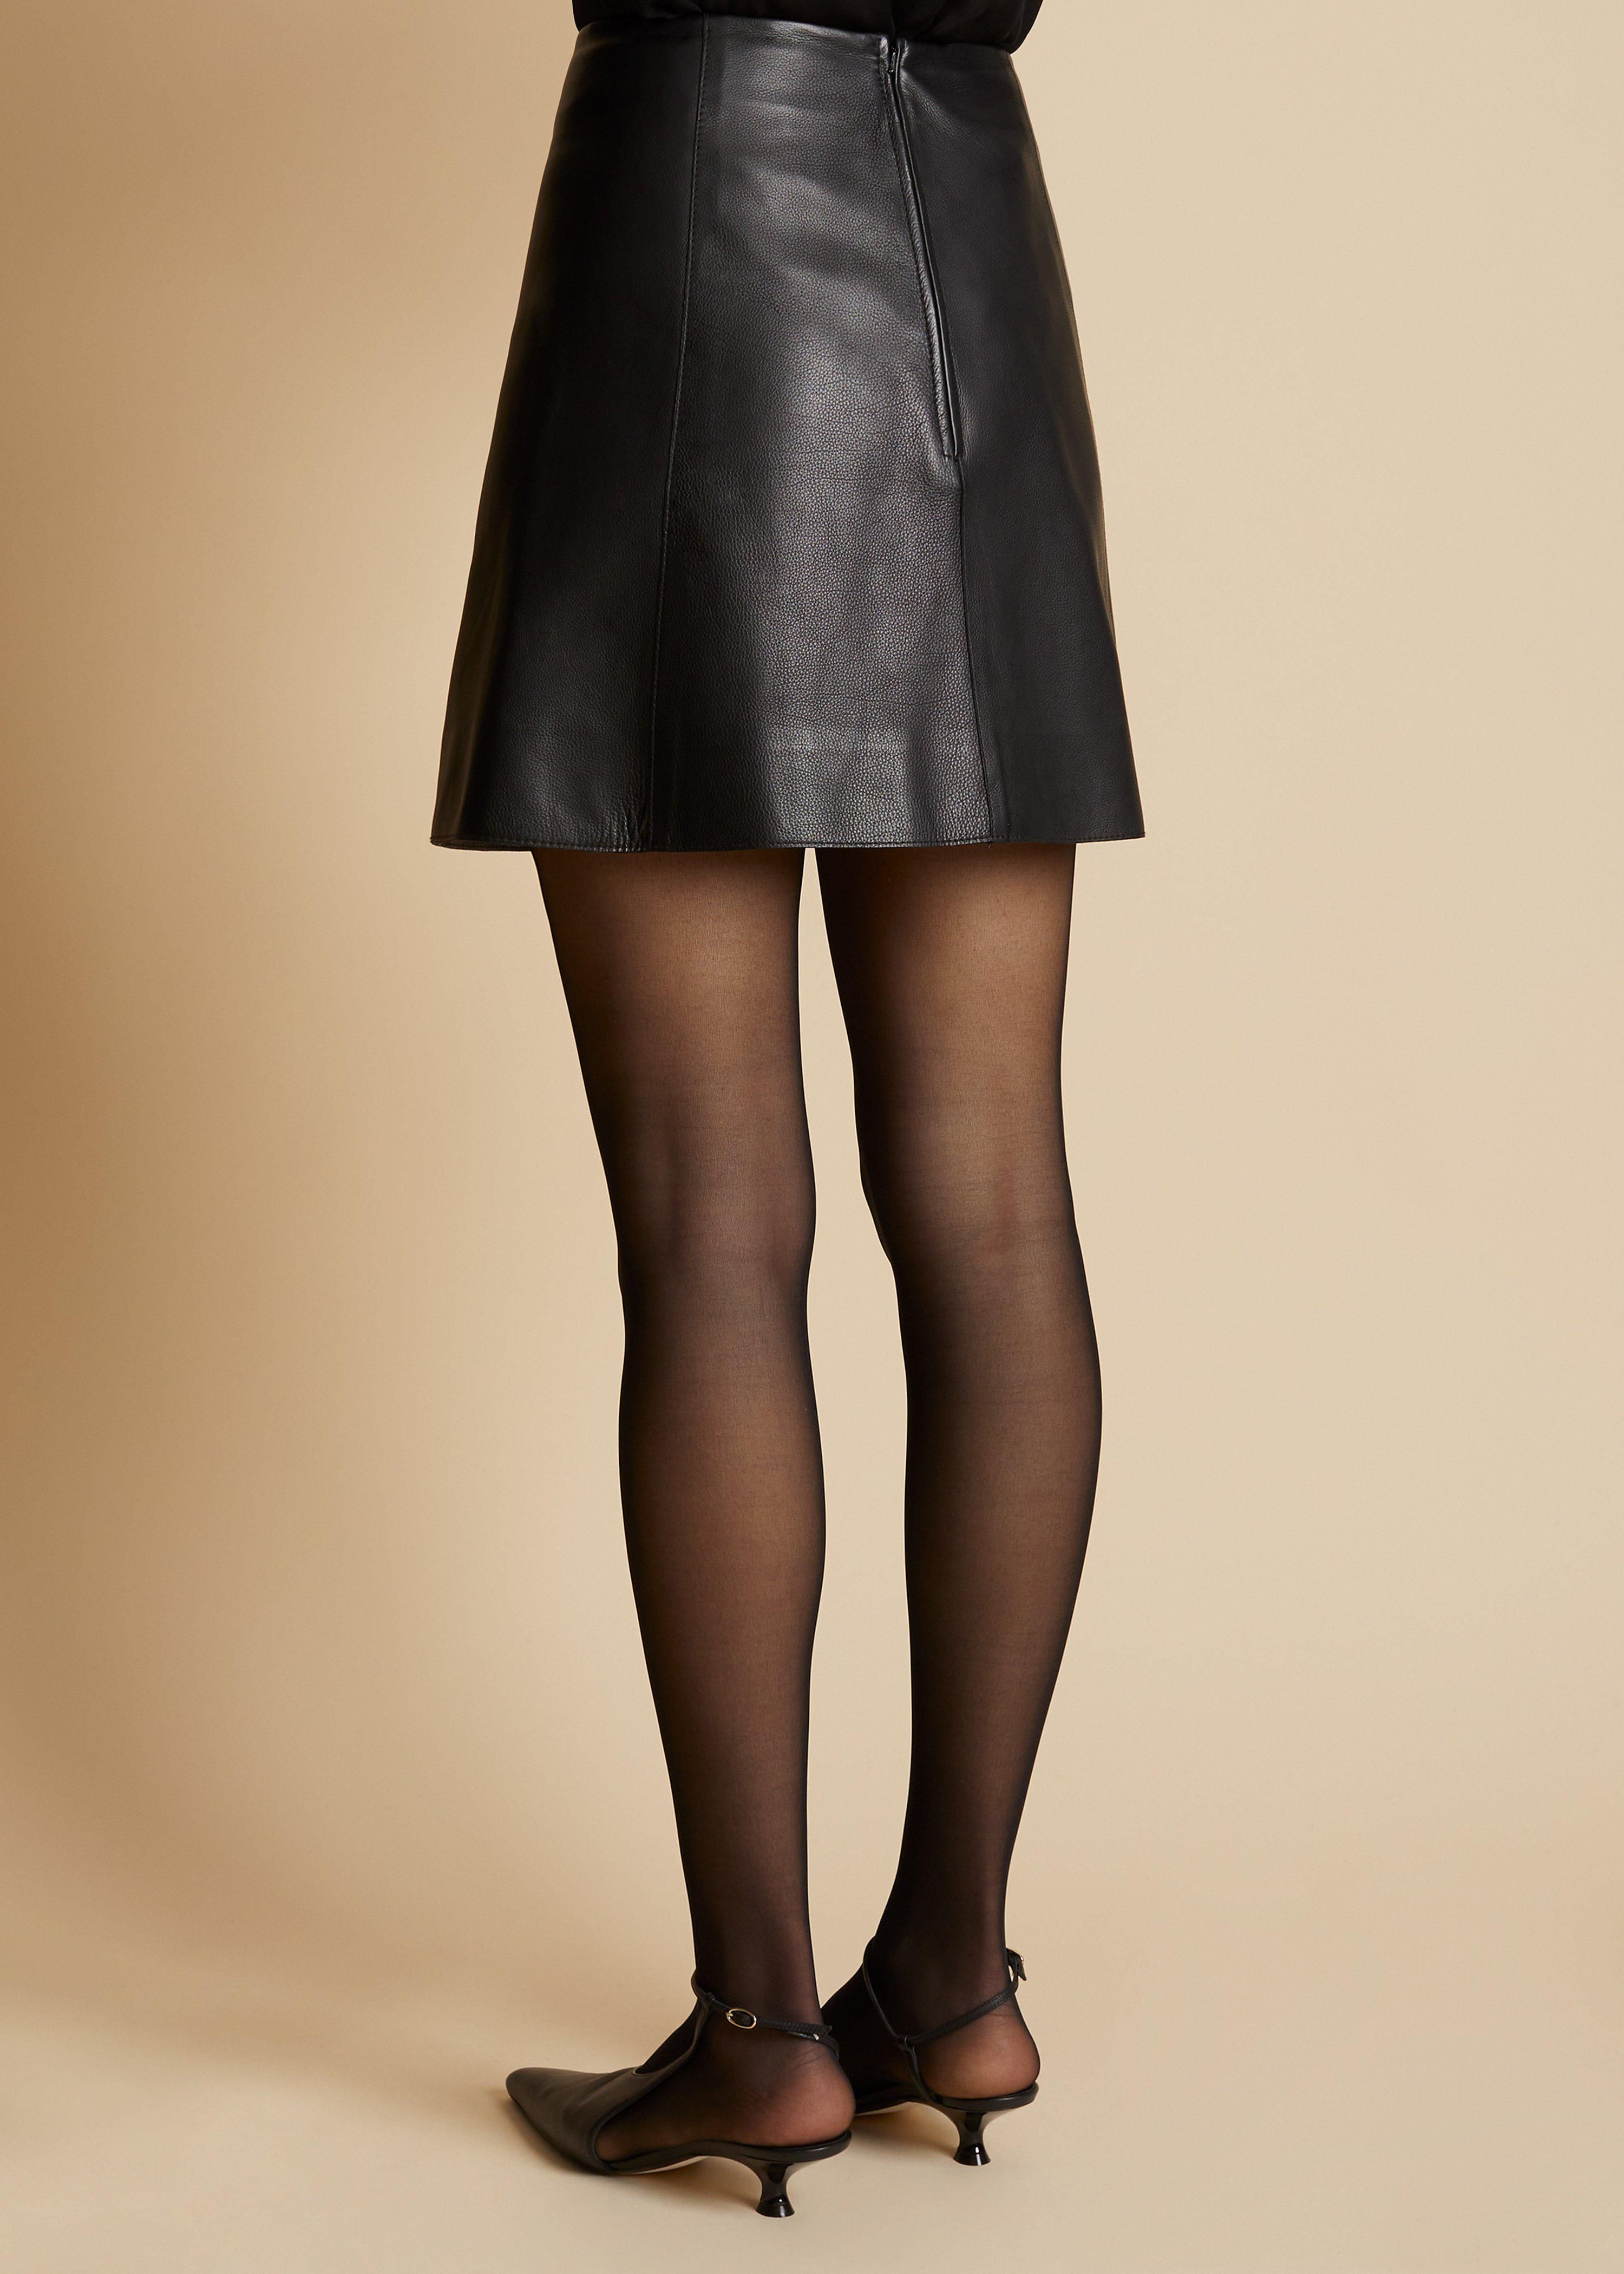 The Sam Skirt in Black Leather 2